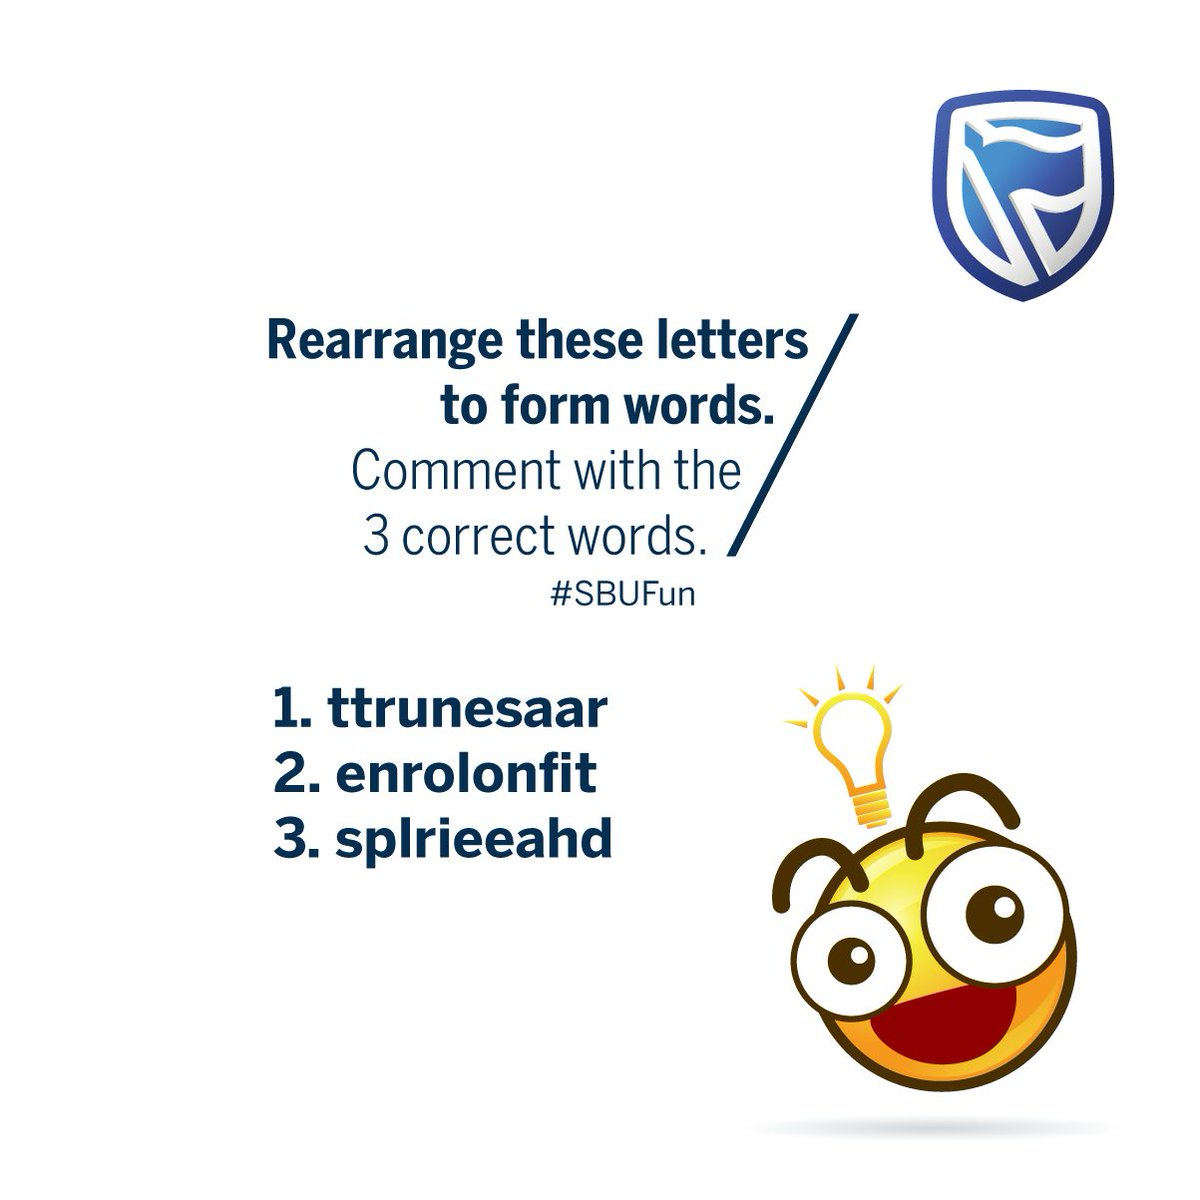 stanbic bank uganda on twitter heres a quick riddle to wind down the day rearrange these letters to form words comment with the 3 correct words